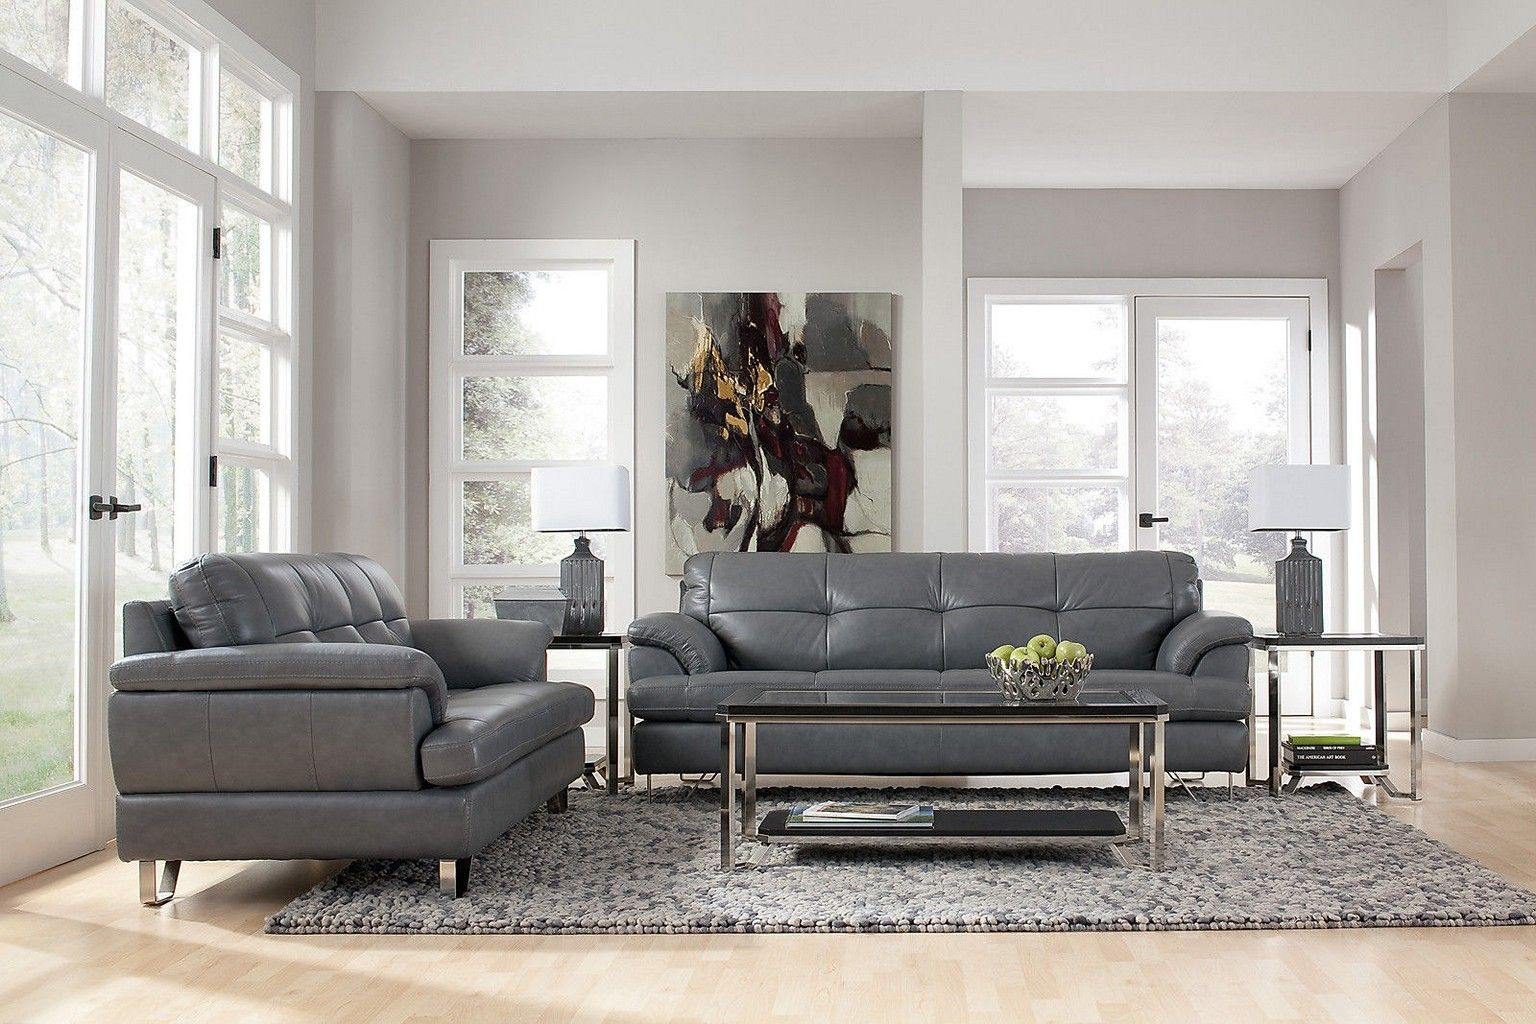 Living Room Design With Black Leather Sofa Best Beautiful Grey Sofa Living Room Image Grey Sofa Living Room Decorating Design